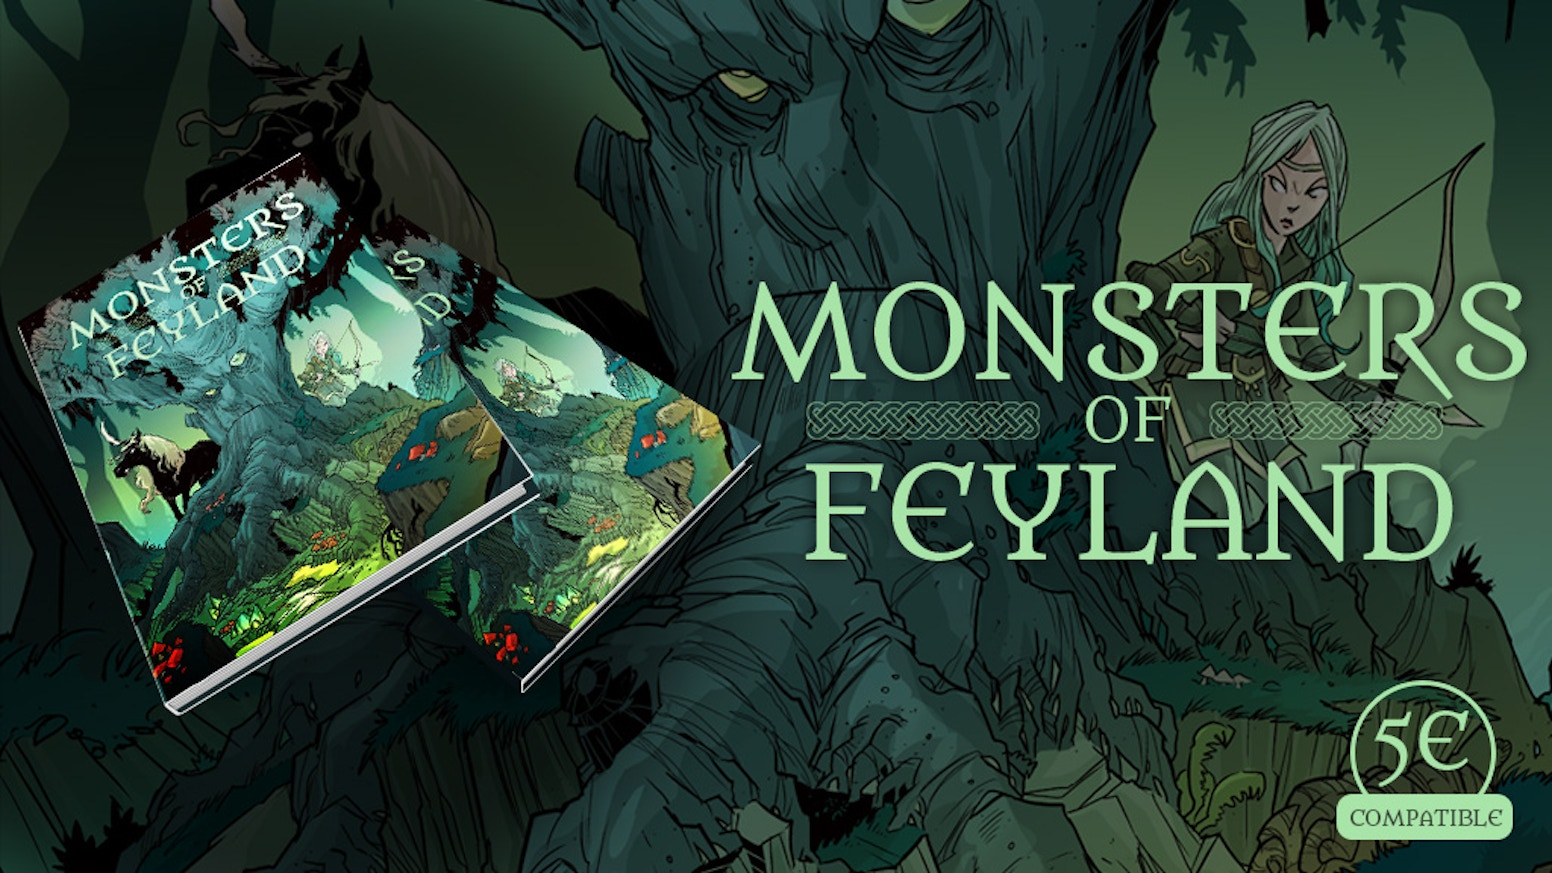 Begin the adventure! Enter the Feyland! Discover 100 new 5E monsters. A full-color, hardcover 5th Edition book.